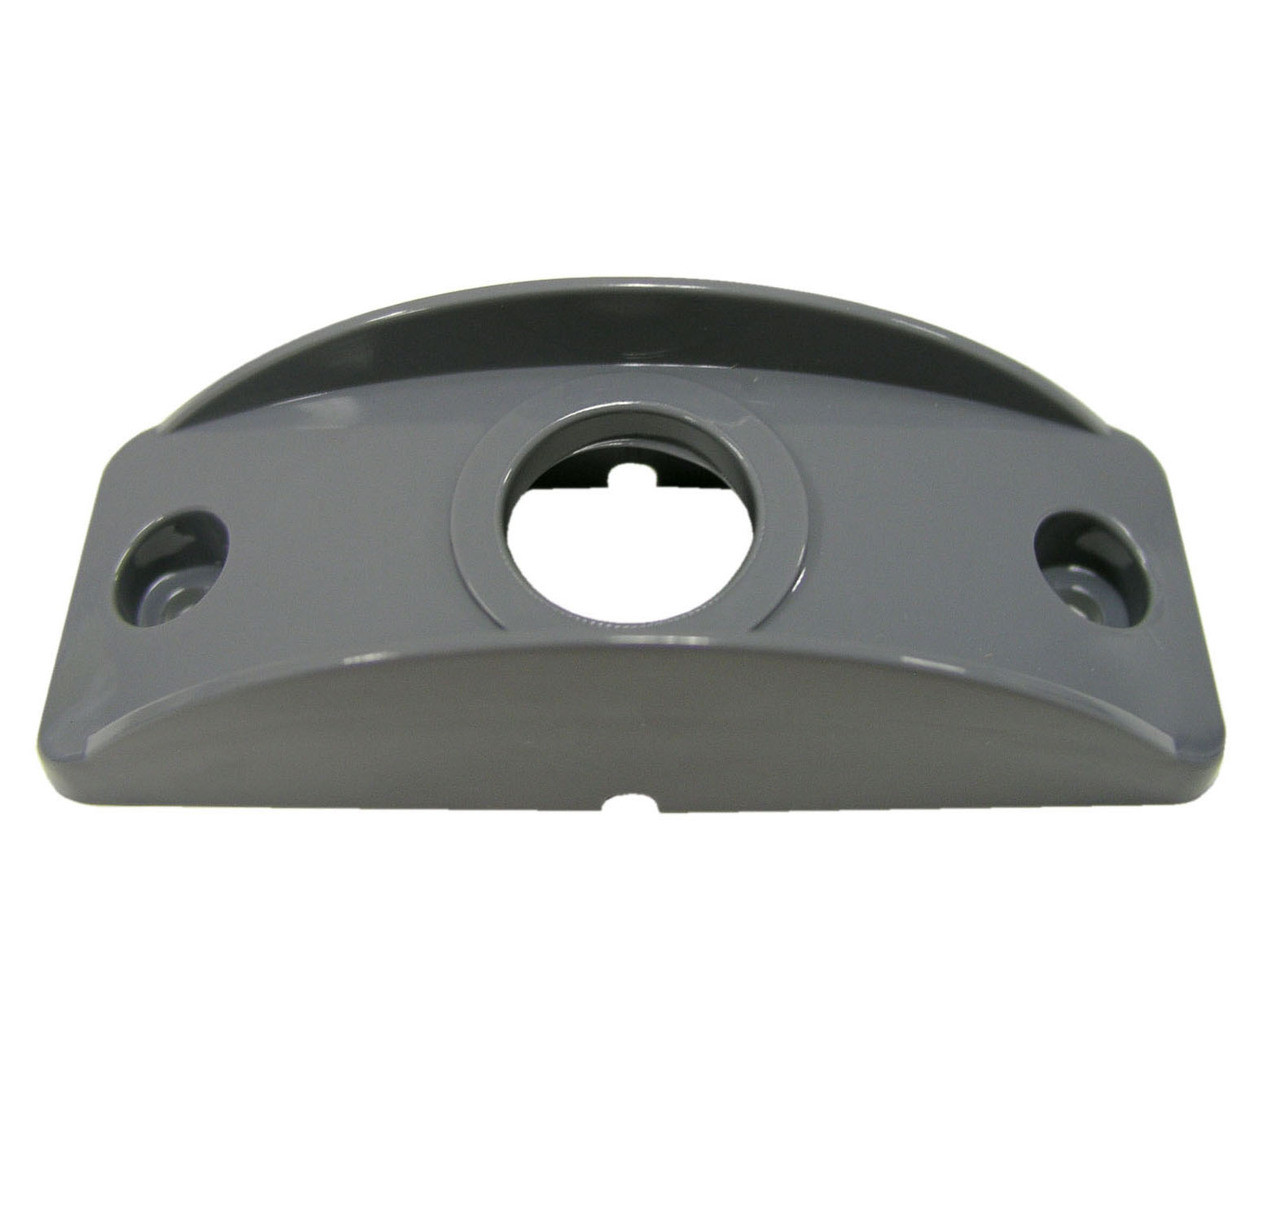 176-10 --- Peterson Surface Mounting Bracket for LED171/181 Series